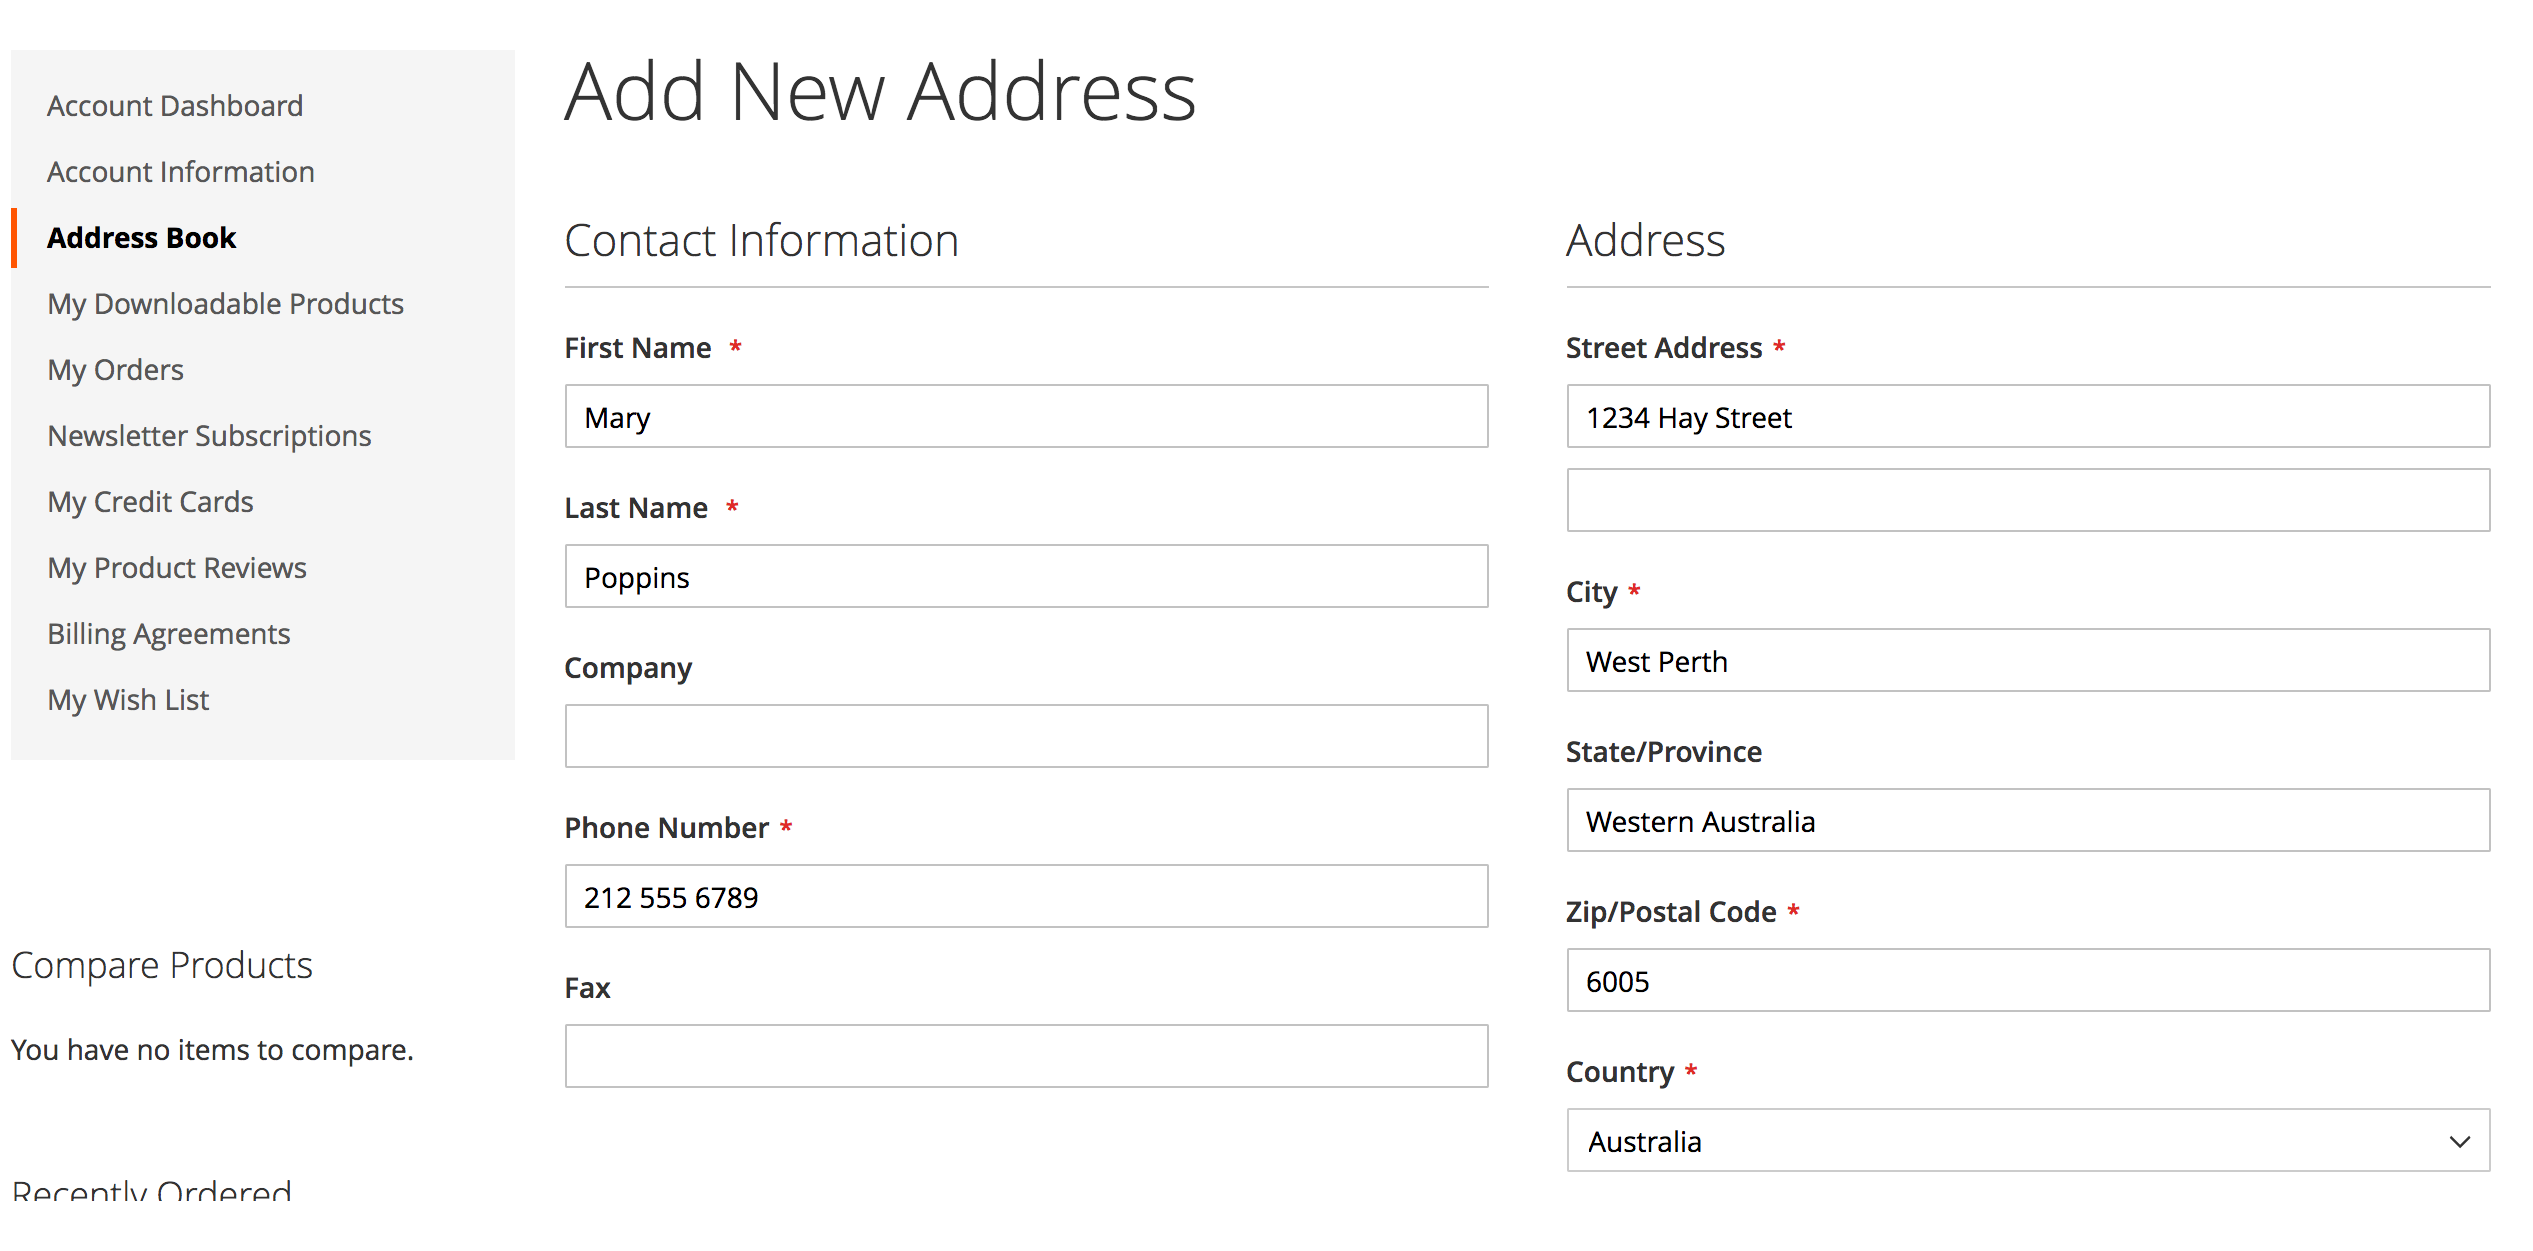 Address Auto-Complete in Address Book